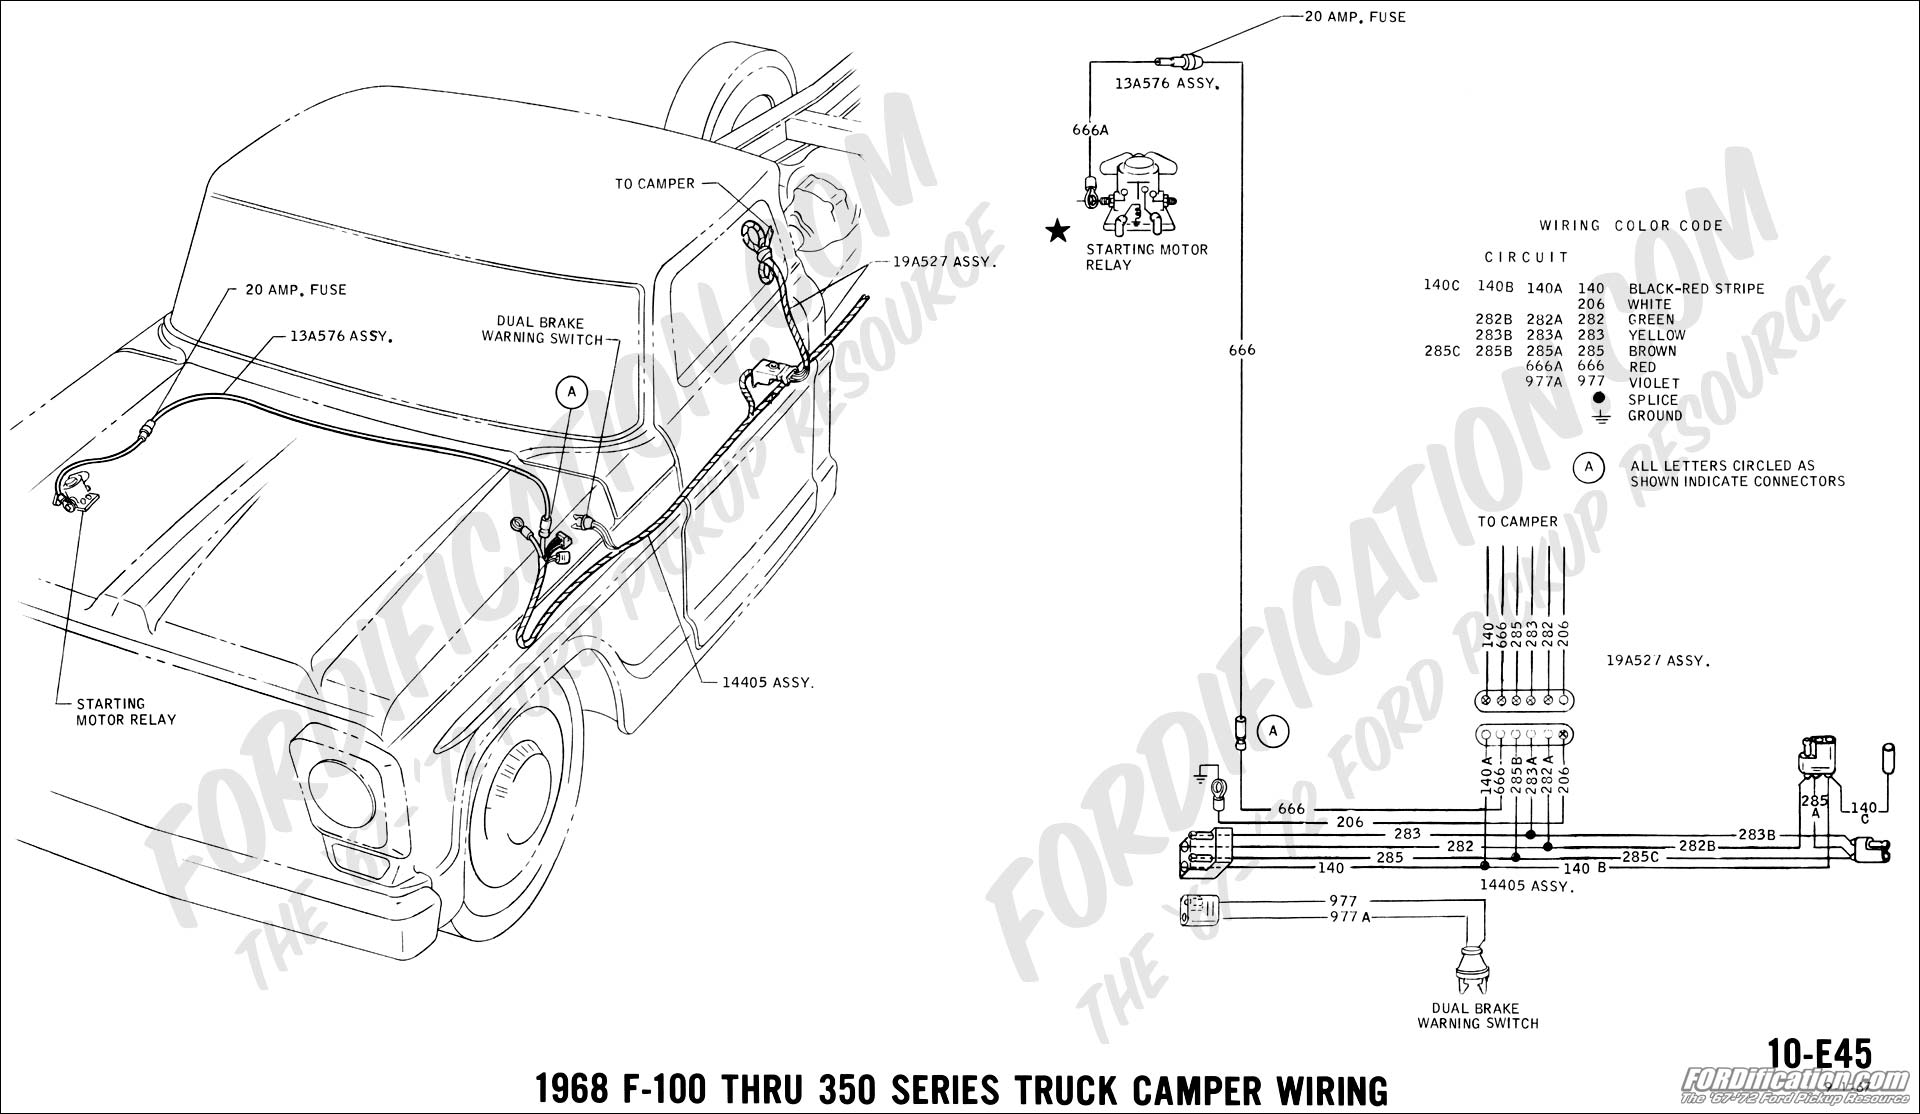 hight resolution of 68 47 ford truck technical drawings and schematics section h wiring truck camper